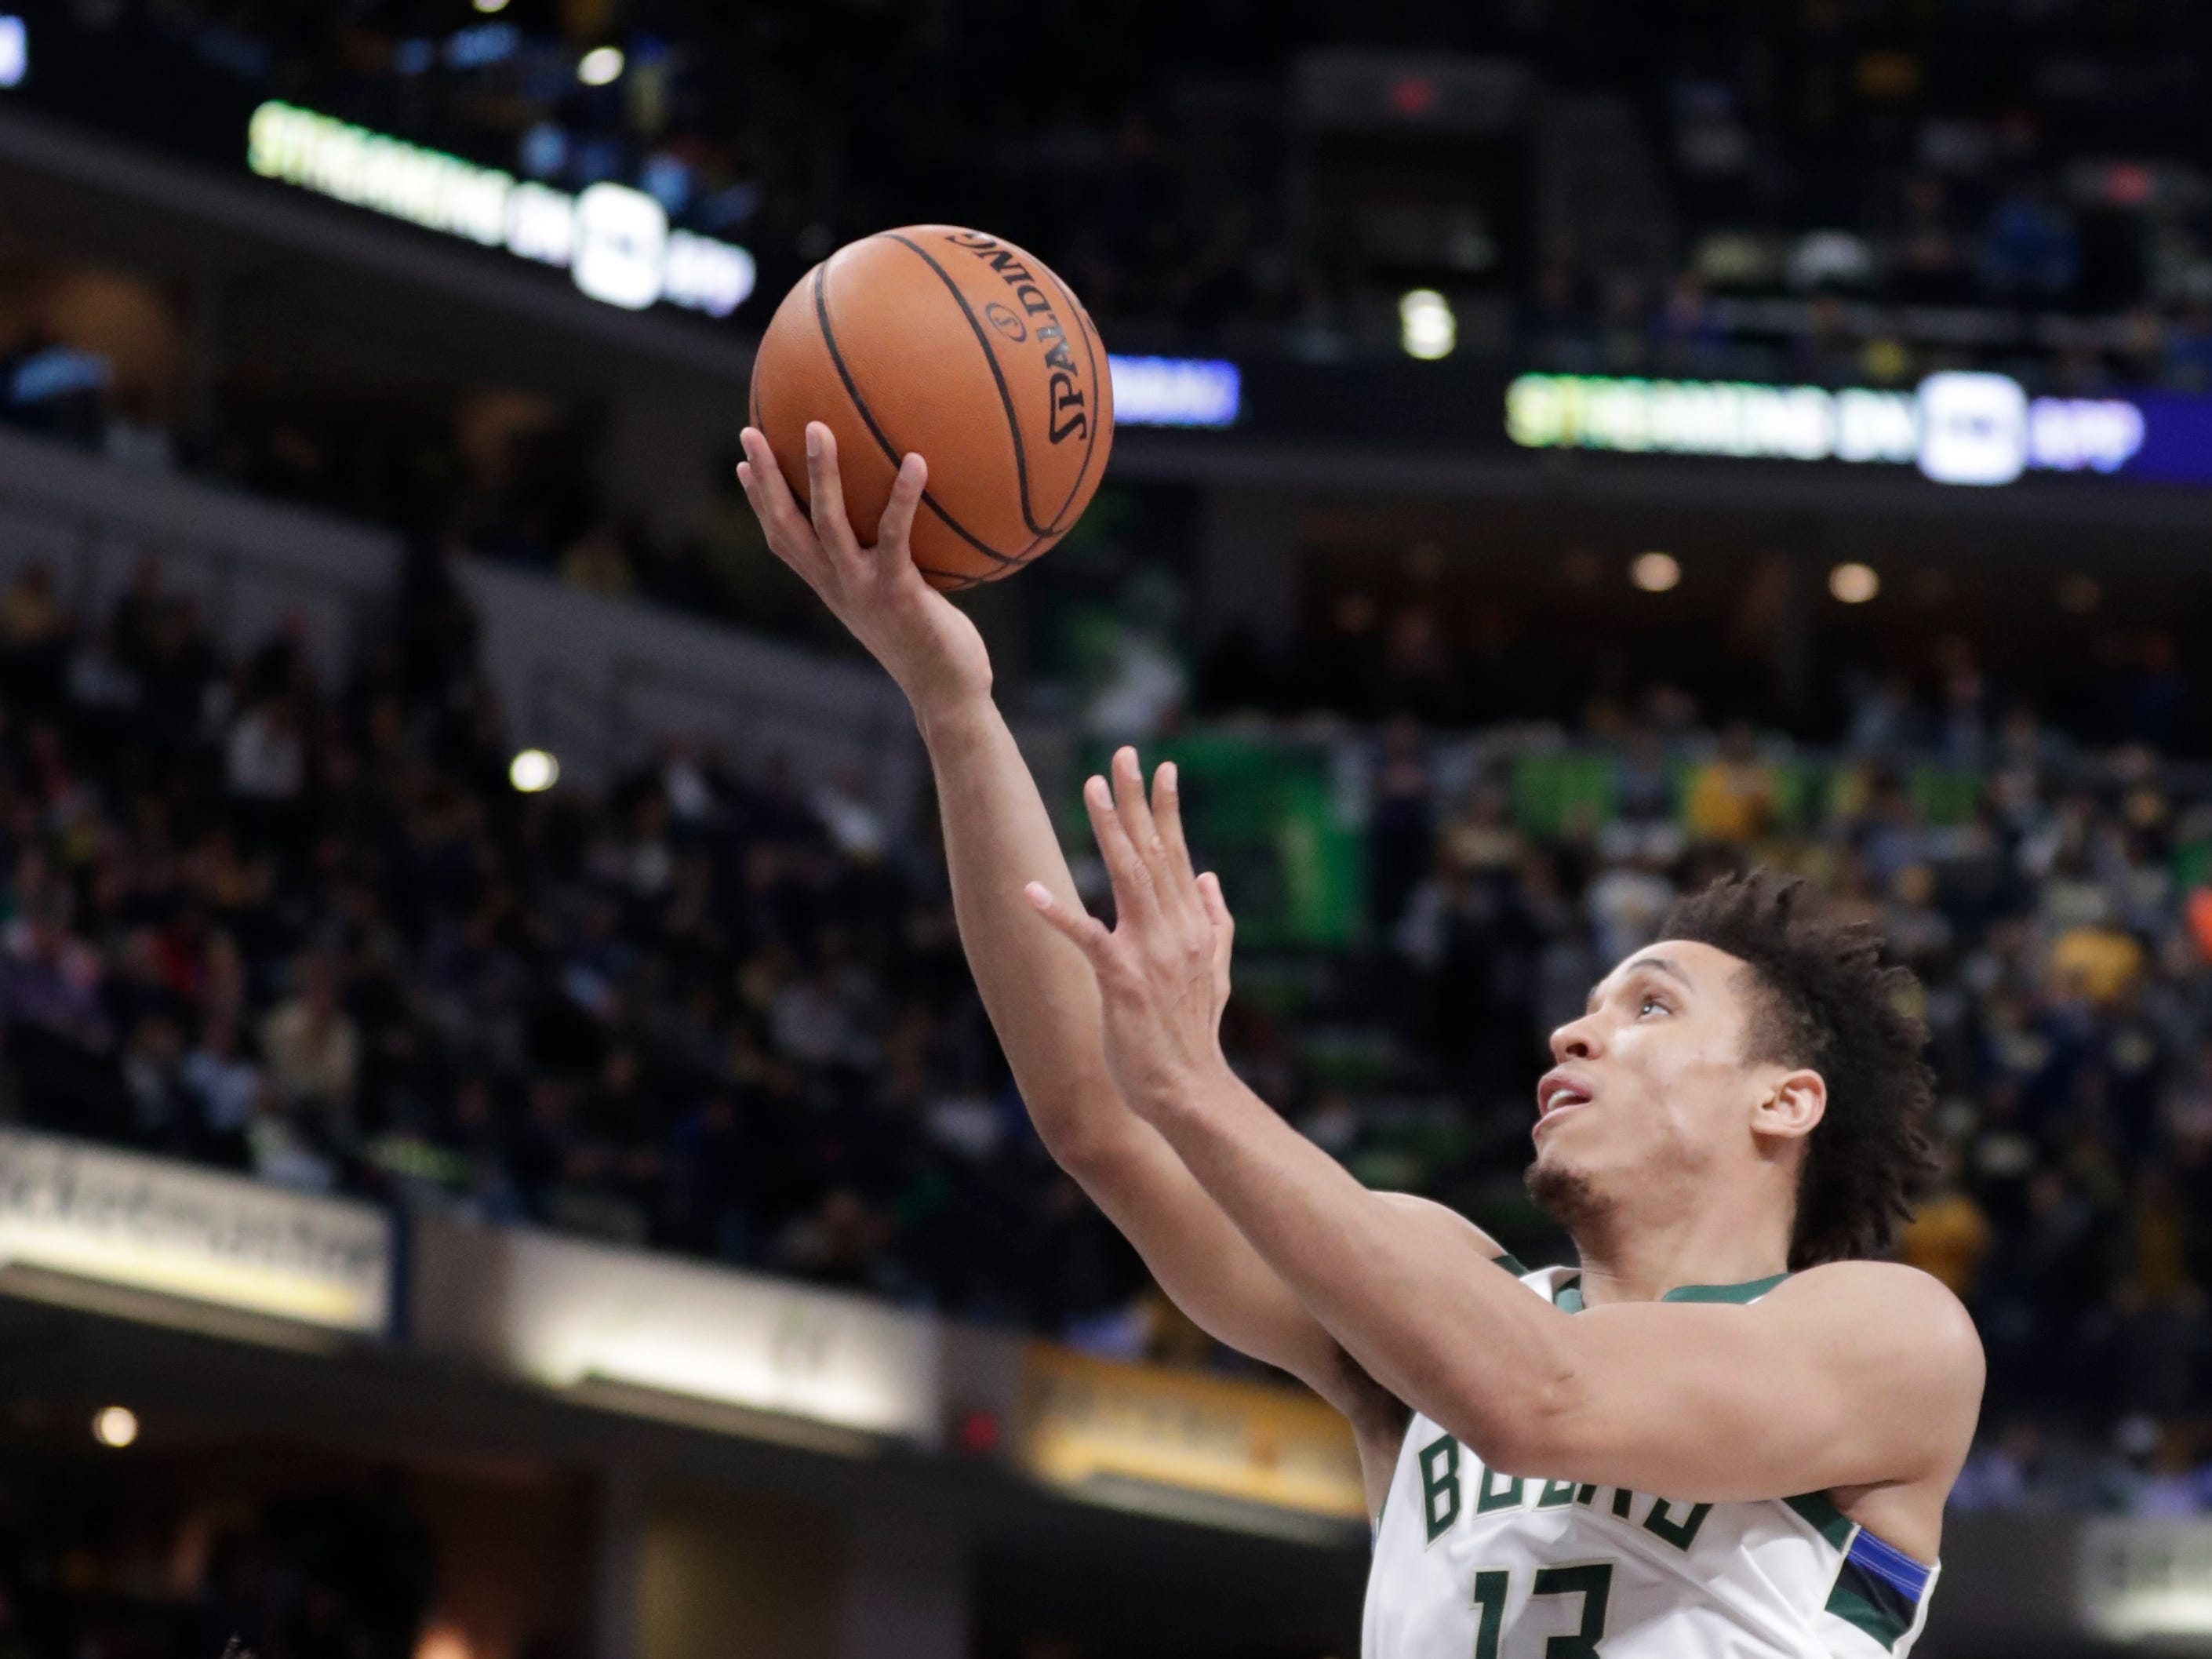 Milwaukee Bucks guard Malcolm Brogdon is fouled by Pacers guard Wesley Matthews on a drive to the basket during the second half Wednesday night.